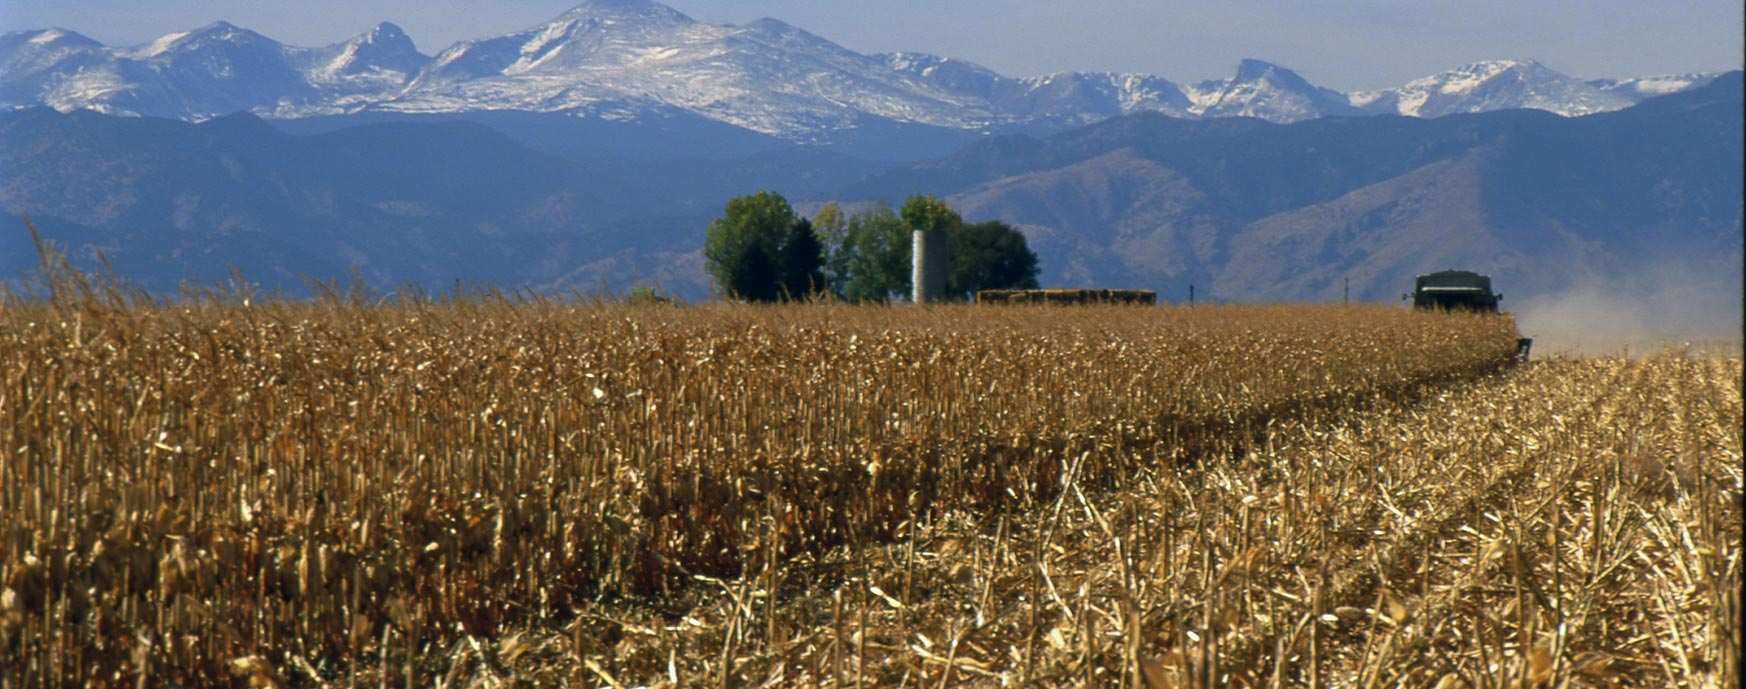 Cornstalks in a field with mountains in the background.